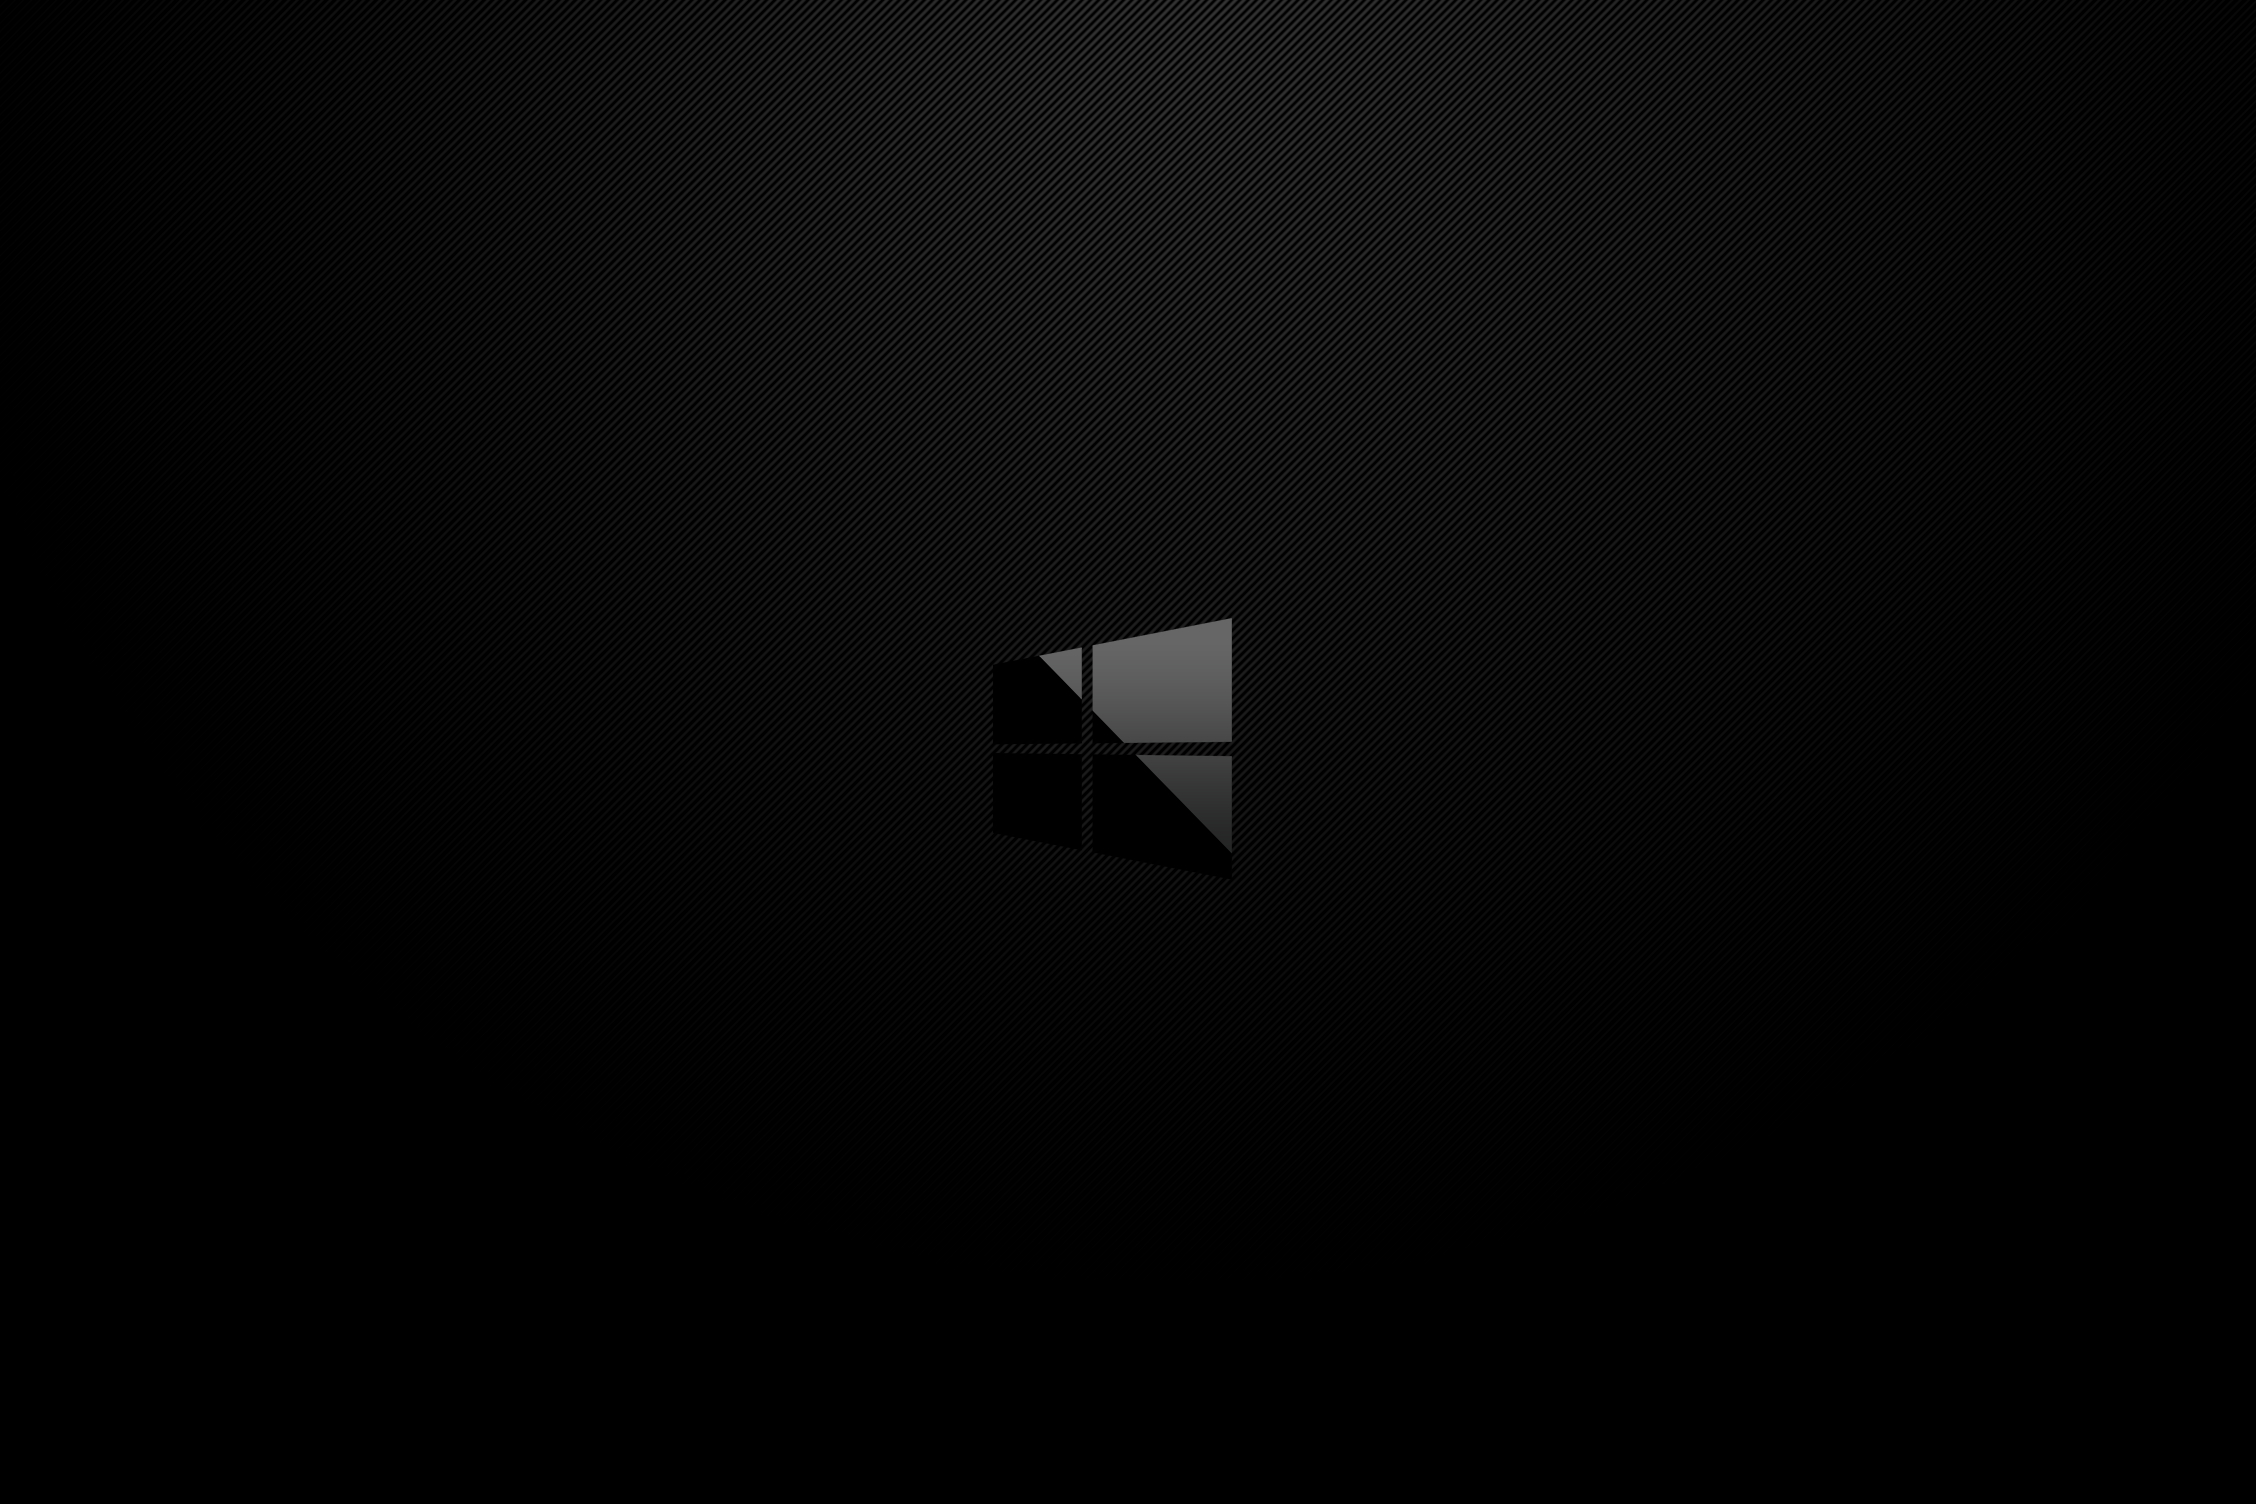 made a dark minimalist wallpaper for my surface laptop. feel free to